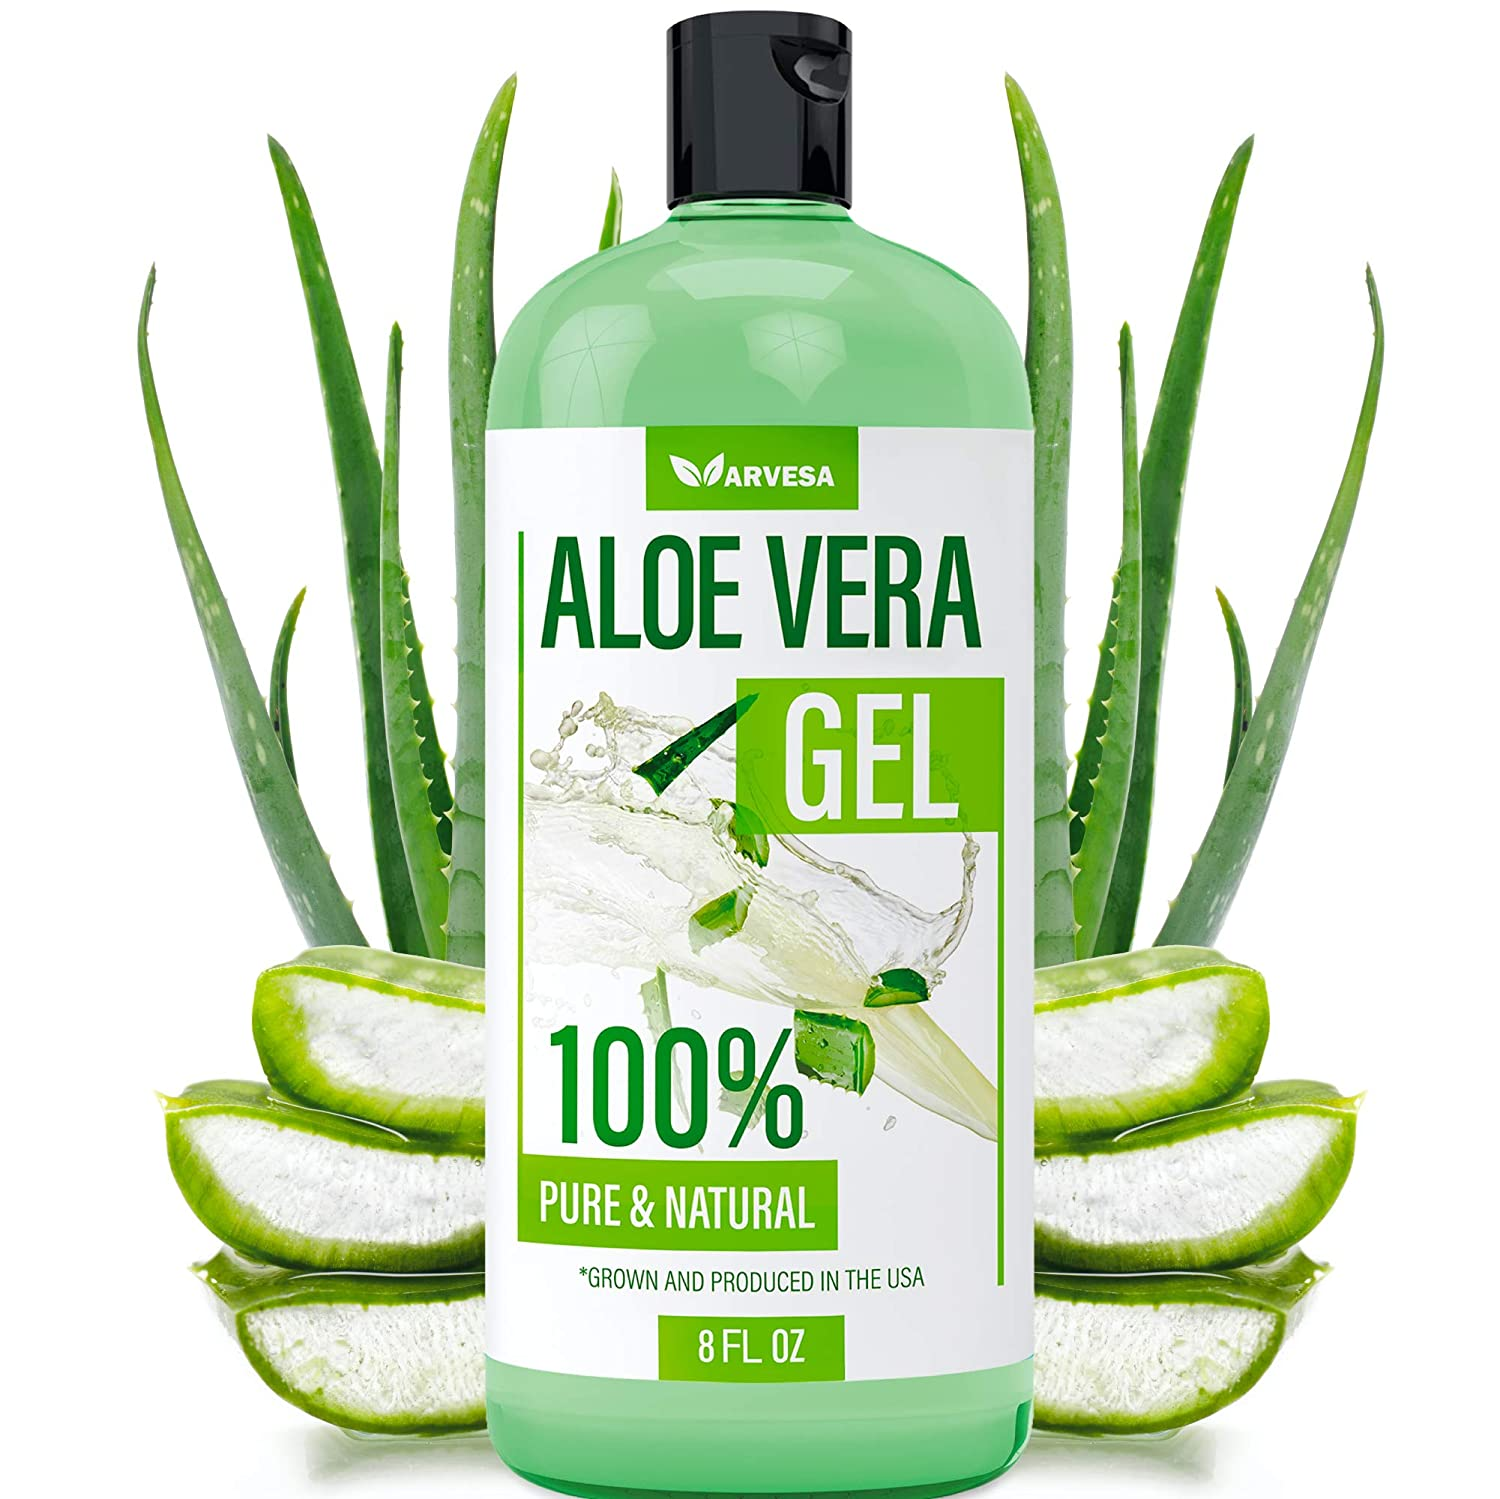 Aloe Vera Gel - 100% Aloe Vera Gel for Moisturizing Skin, Face and Body After Sun Care - Soothing Aloe Lotion for Sunburn, and Acne, Naturally Grown in the USA - Non Sticky - 8 oz